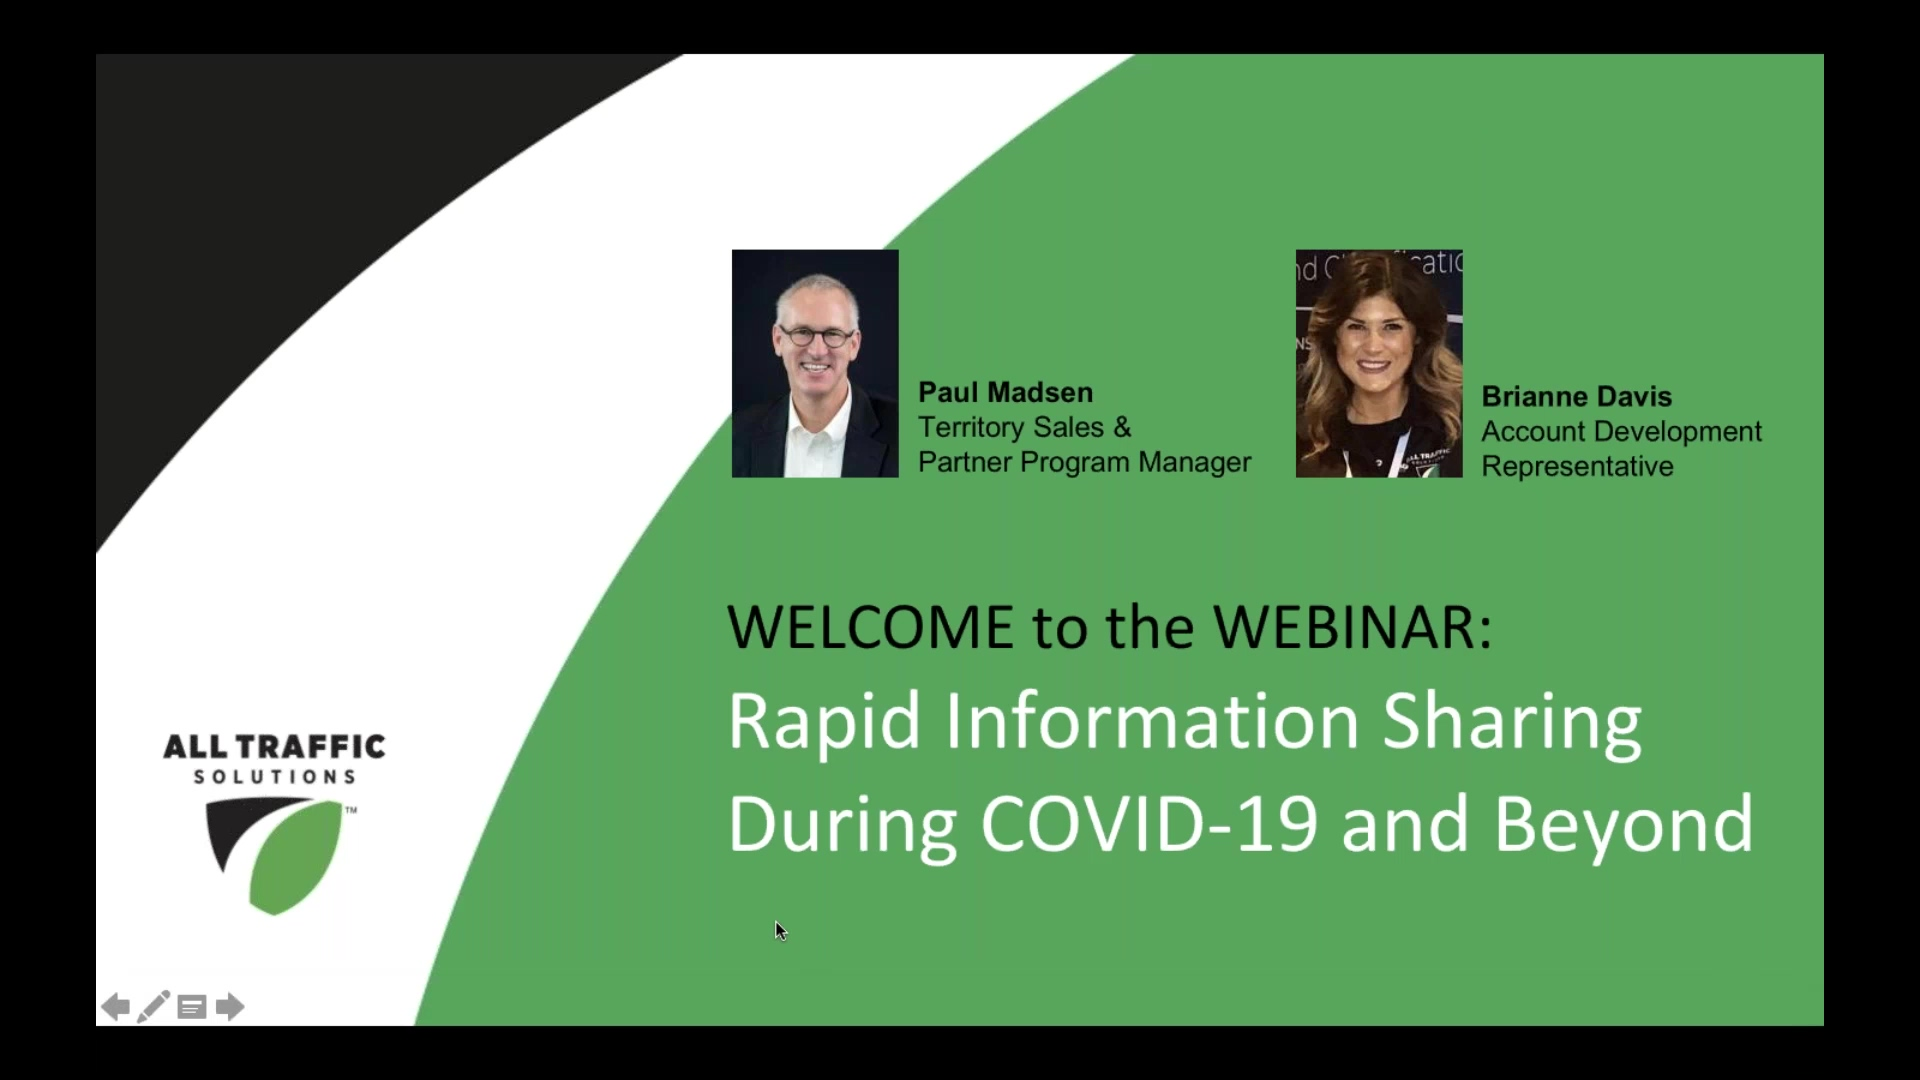 Rapid Information-Sharing During COVID-19 and Beyond (1)